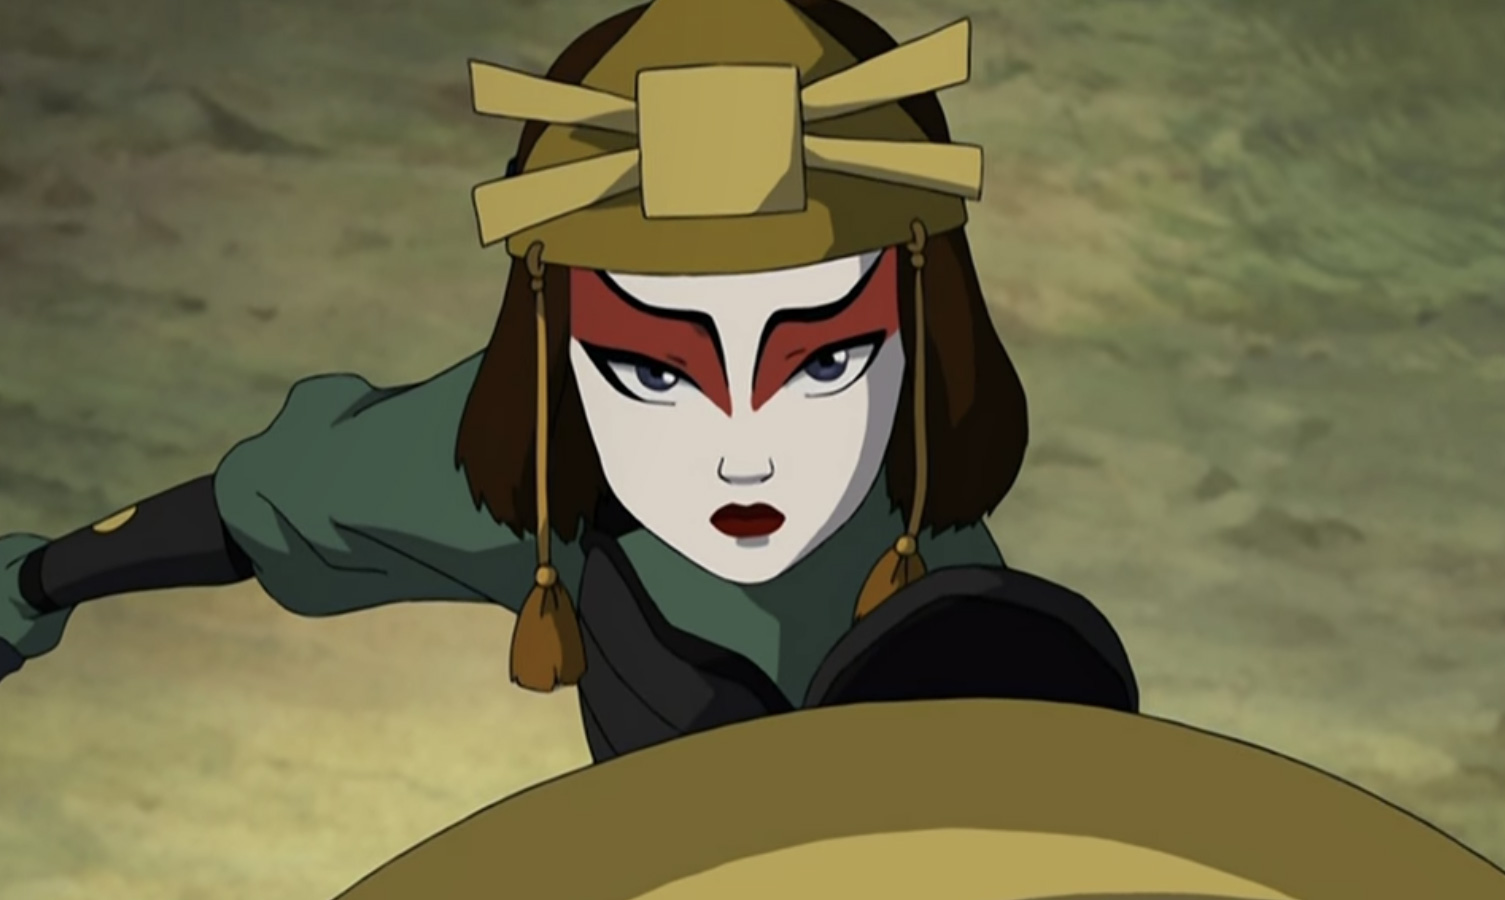 Screenshot of Suki from Book 3 of Avatar: The Last Airbender.